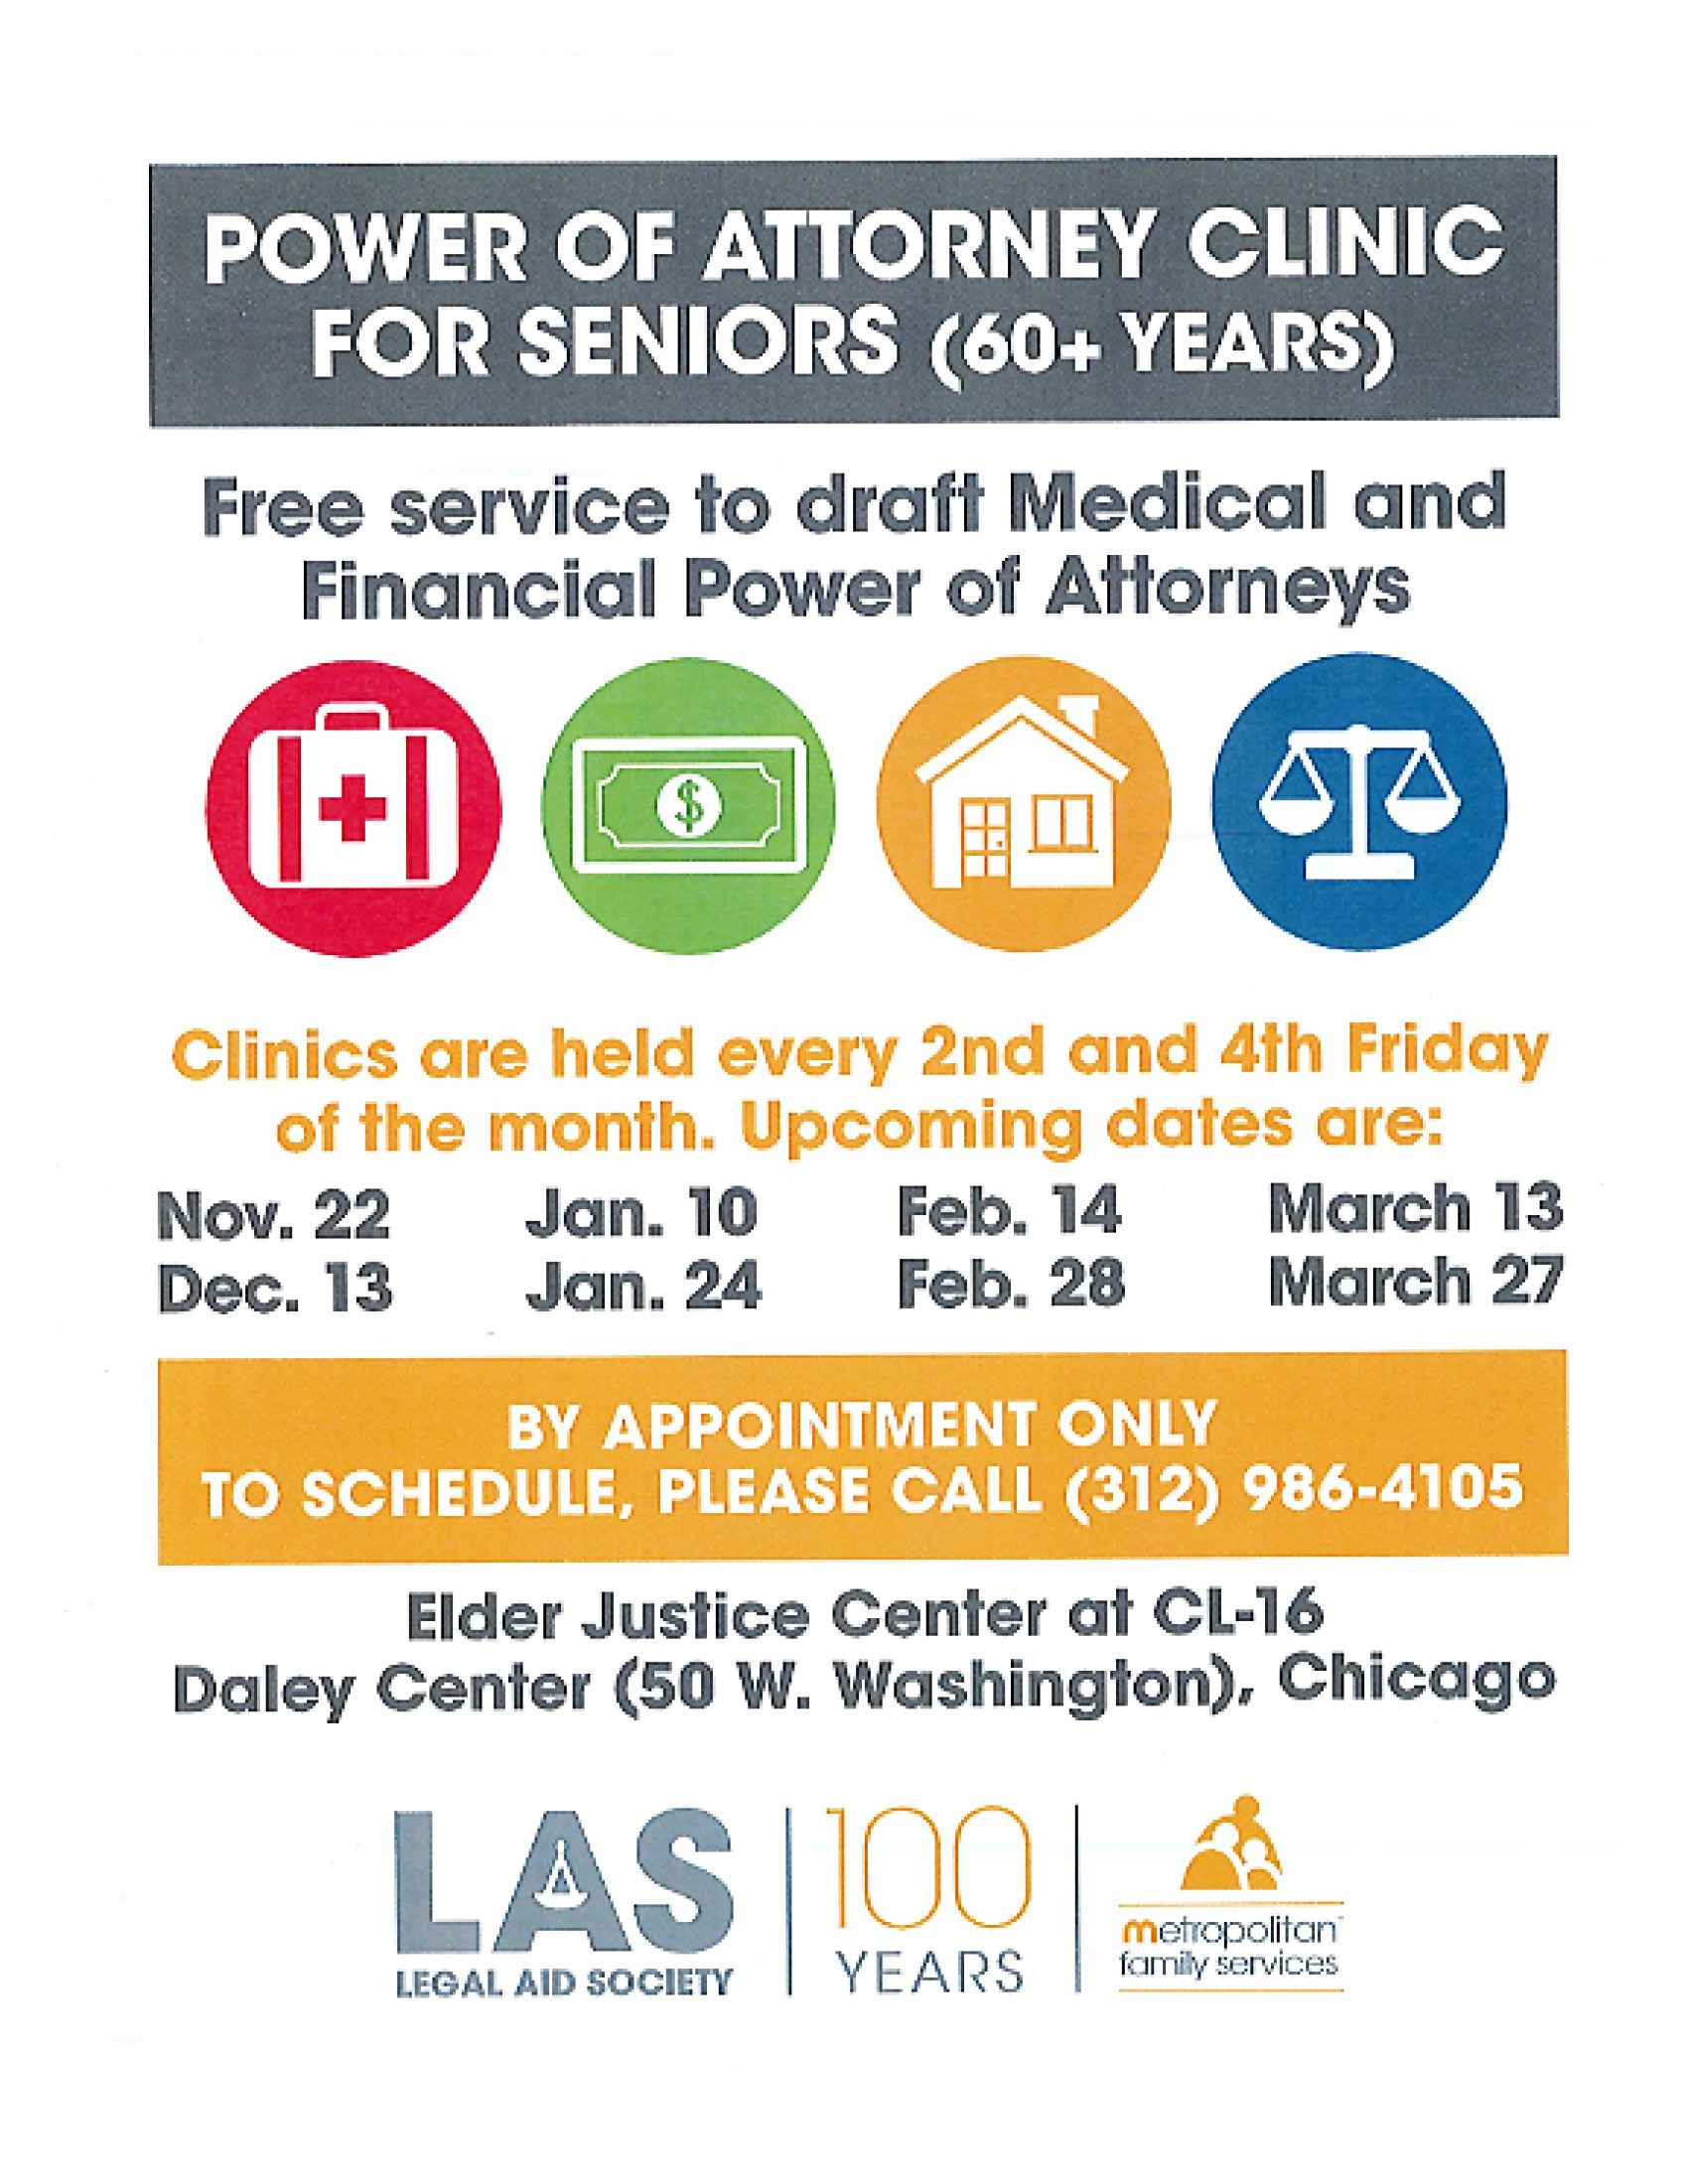 2020 Metropolitan Family Services - Legal Aid Society - Power of Attorney Clinic for Seniors